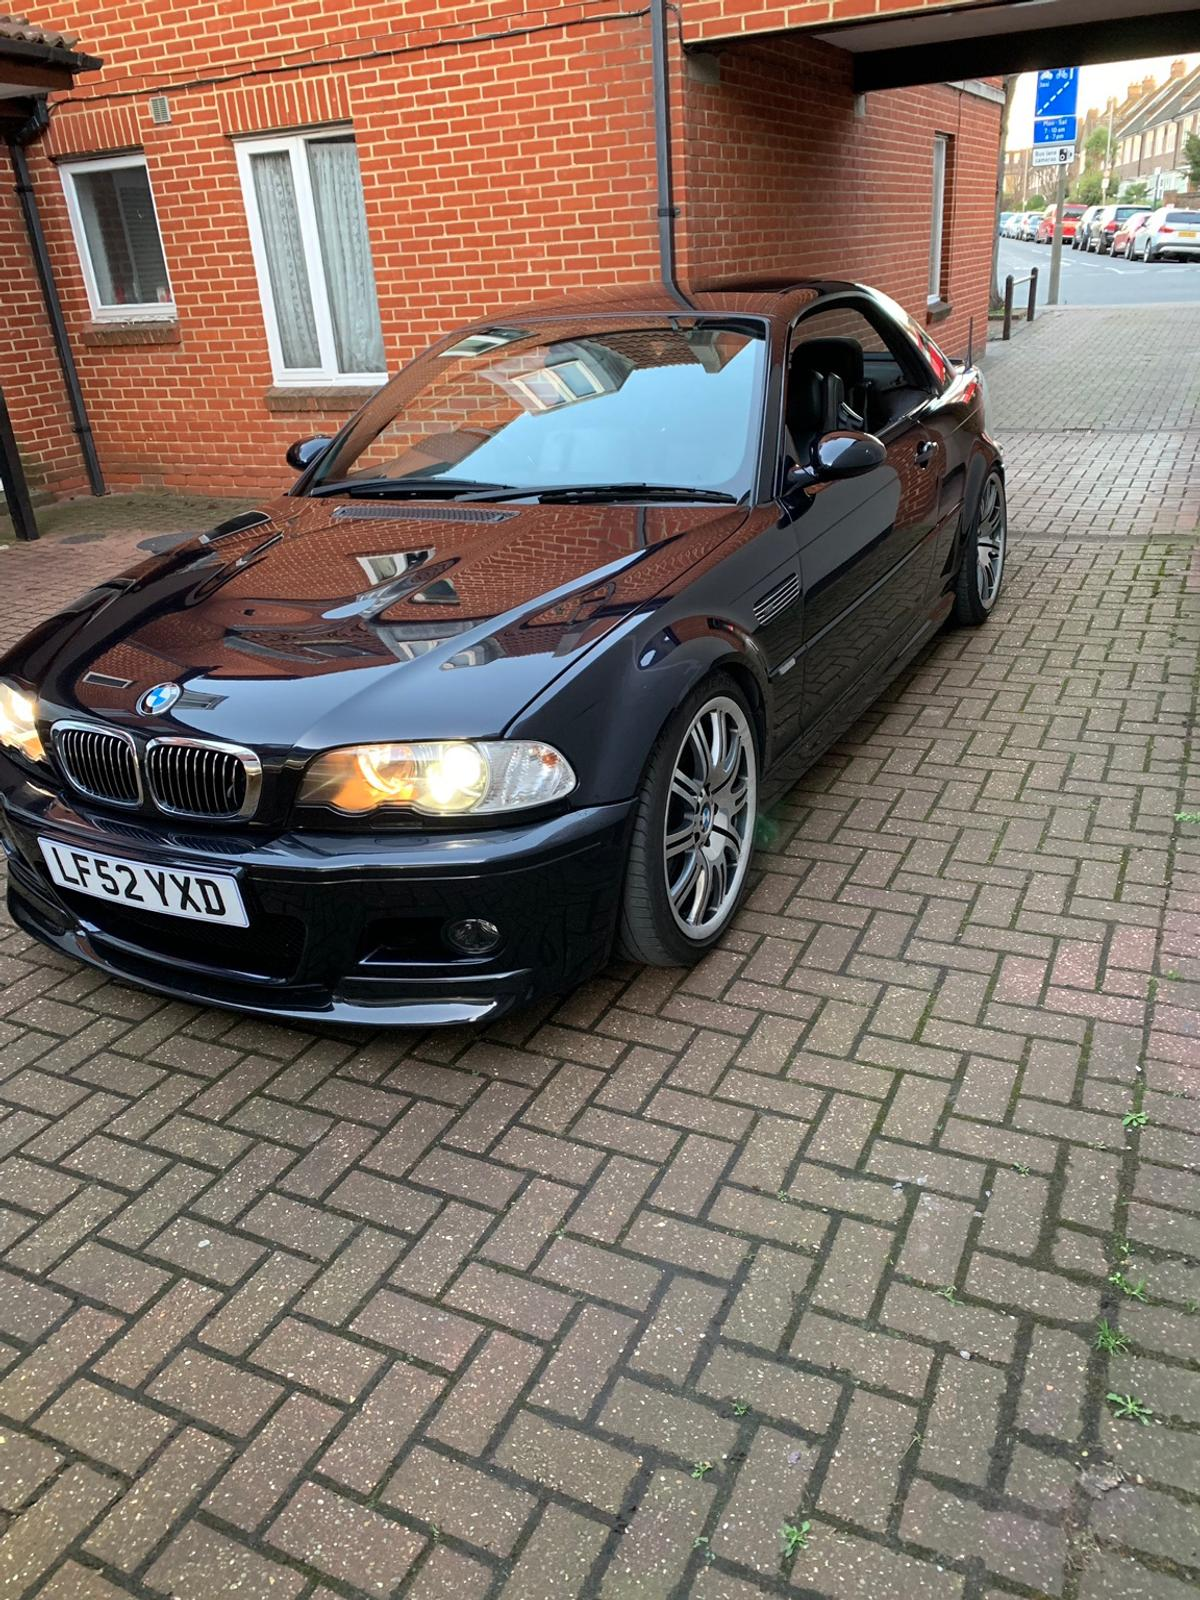 BMW e46 M3 convertible smg in SW17 Wandsworth for £7,800 00